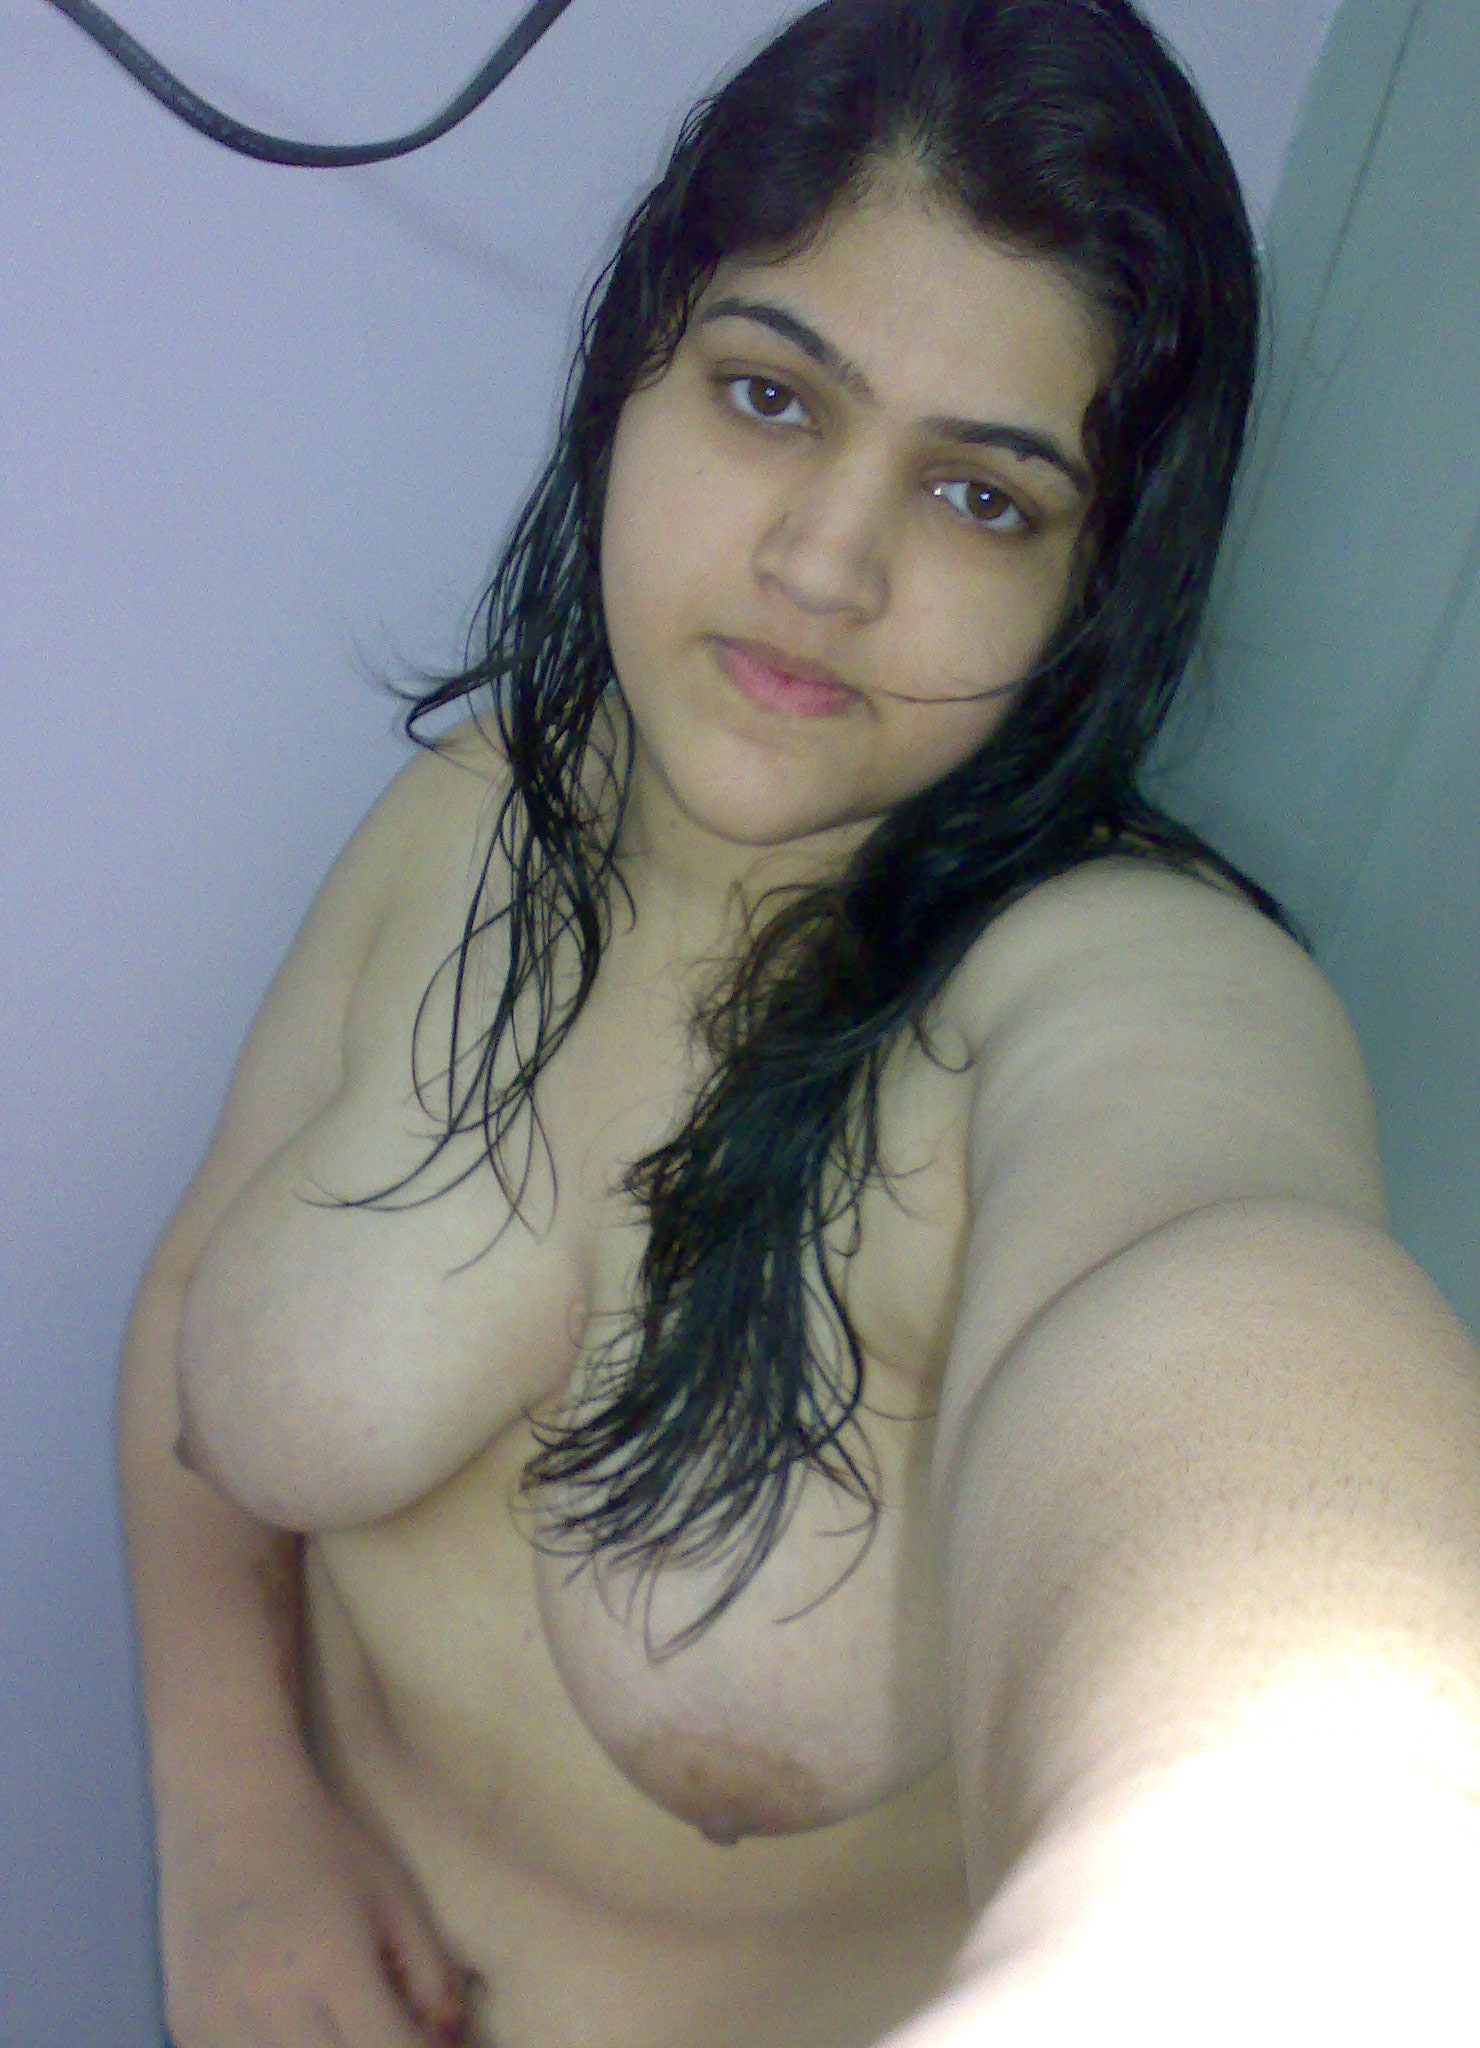 Indian MMS and nude desi girls Pics of desi girls